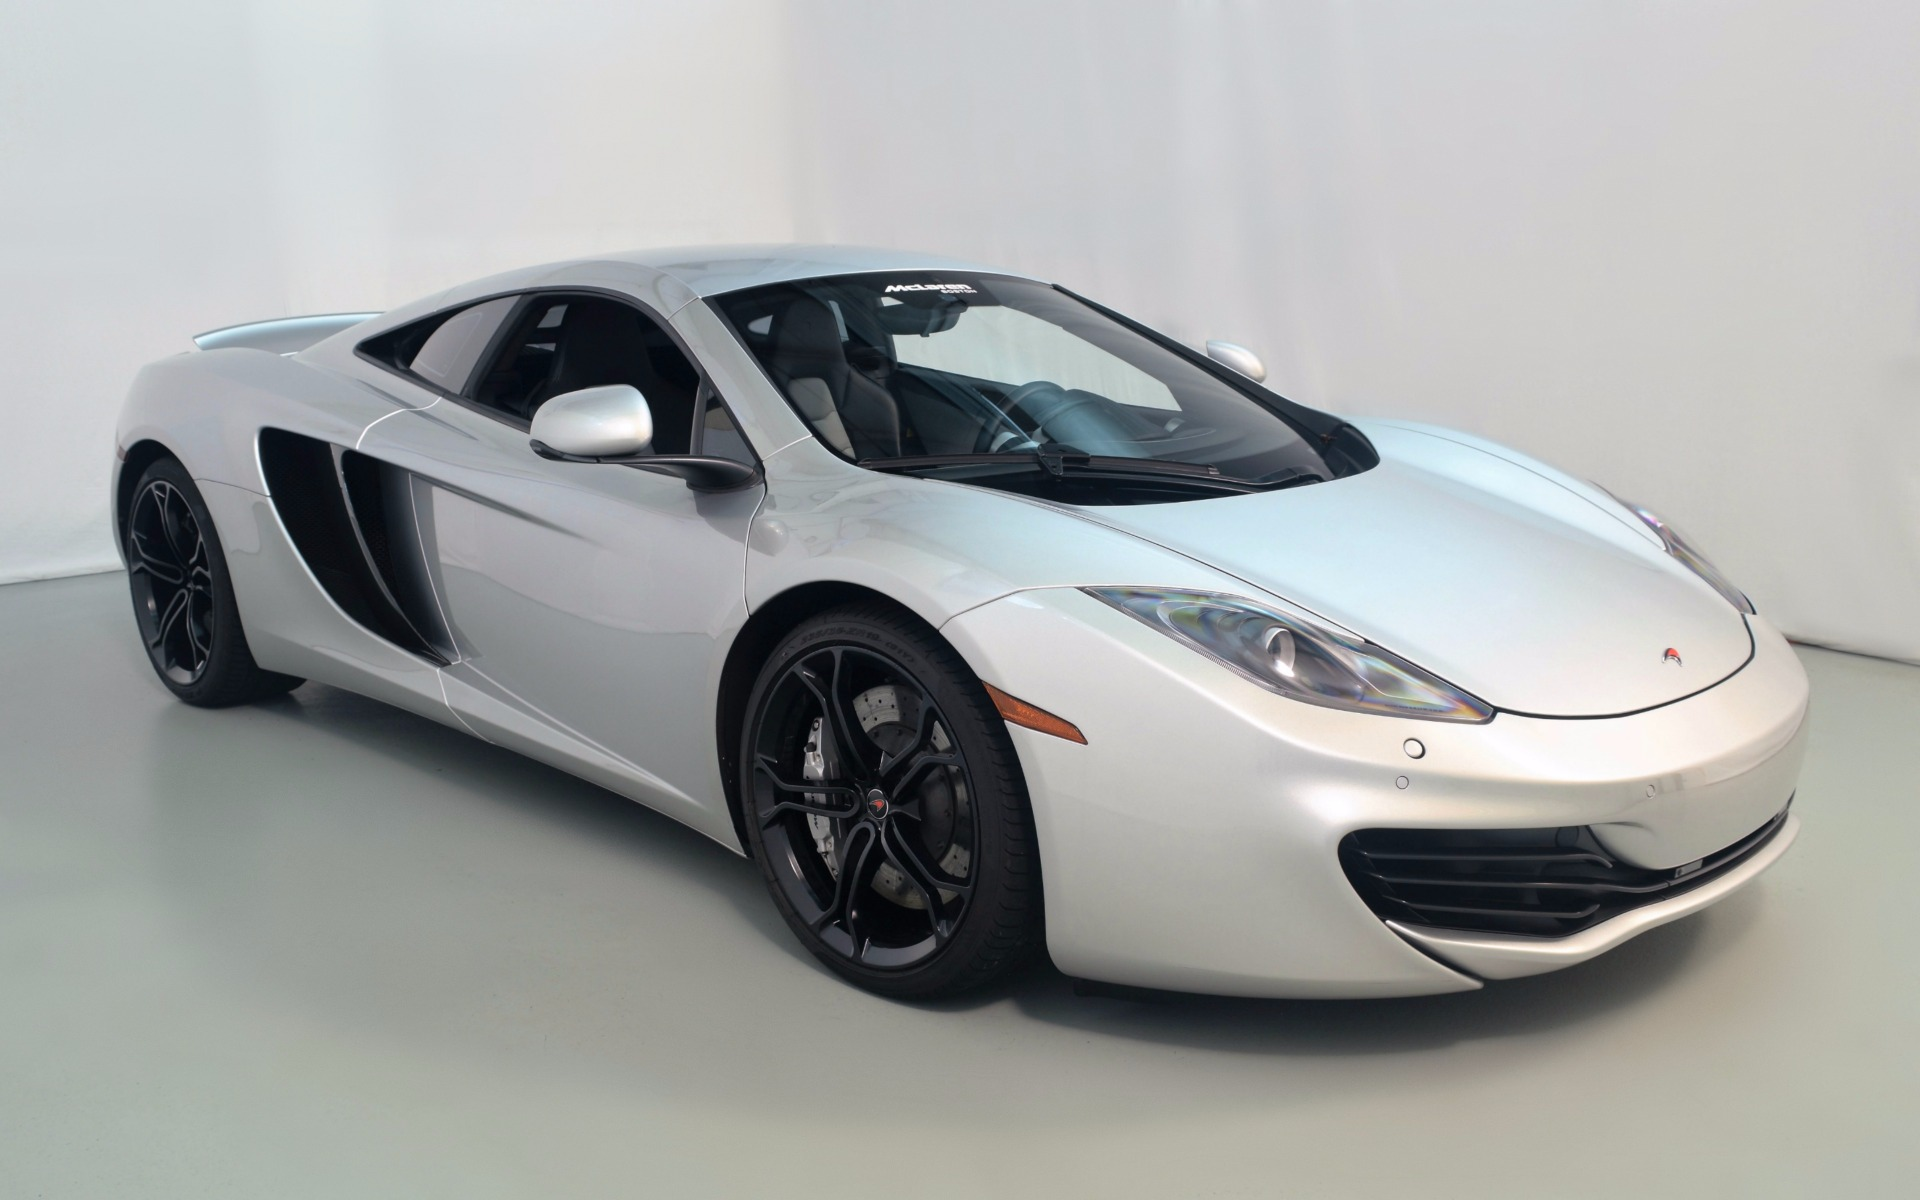 What To Do With Used Car Seats >> 2012 MCLAREN MP4-12C For Sale in Norwell, MA 000531 ...